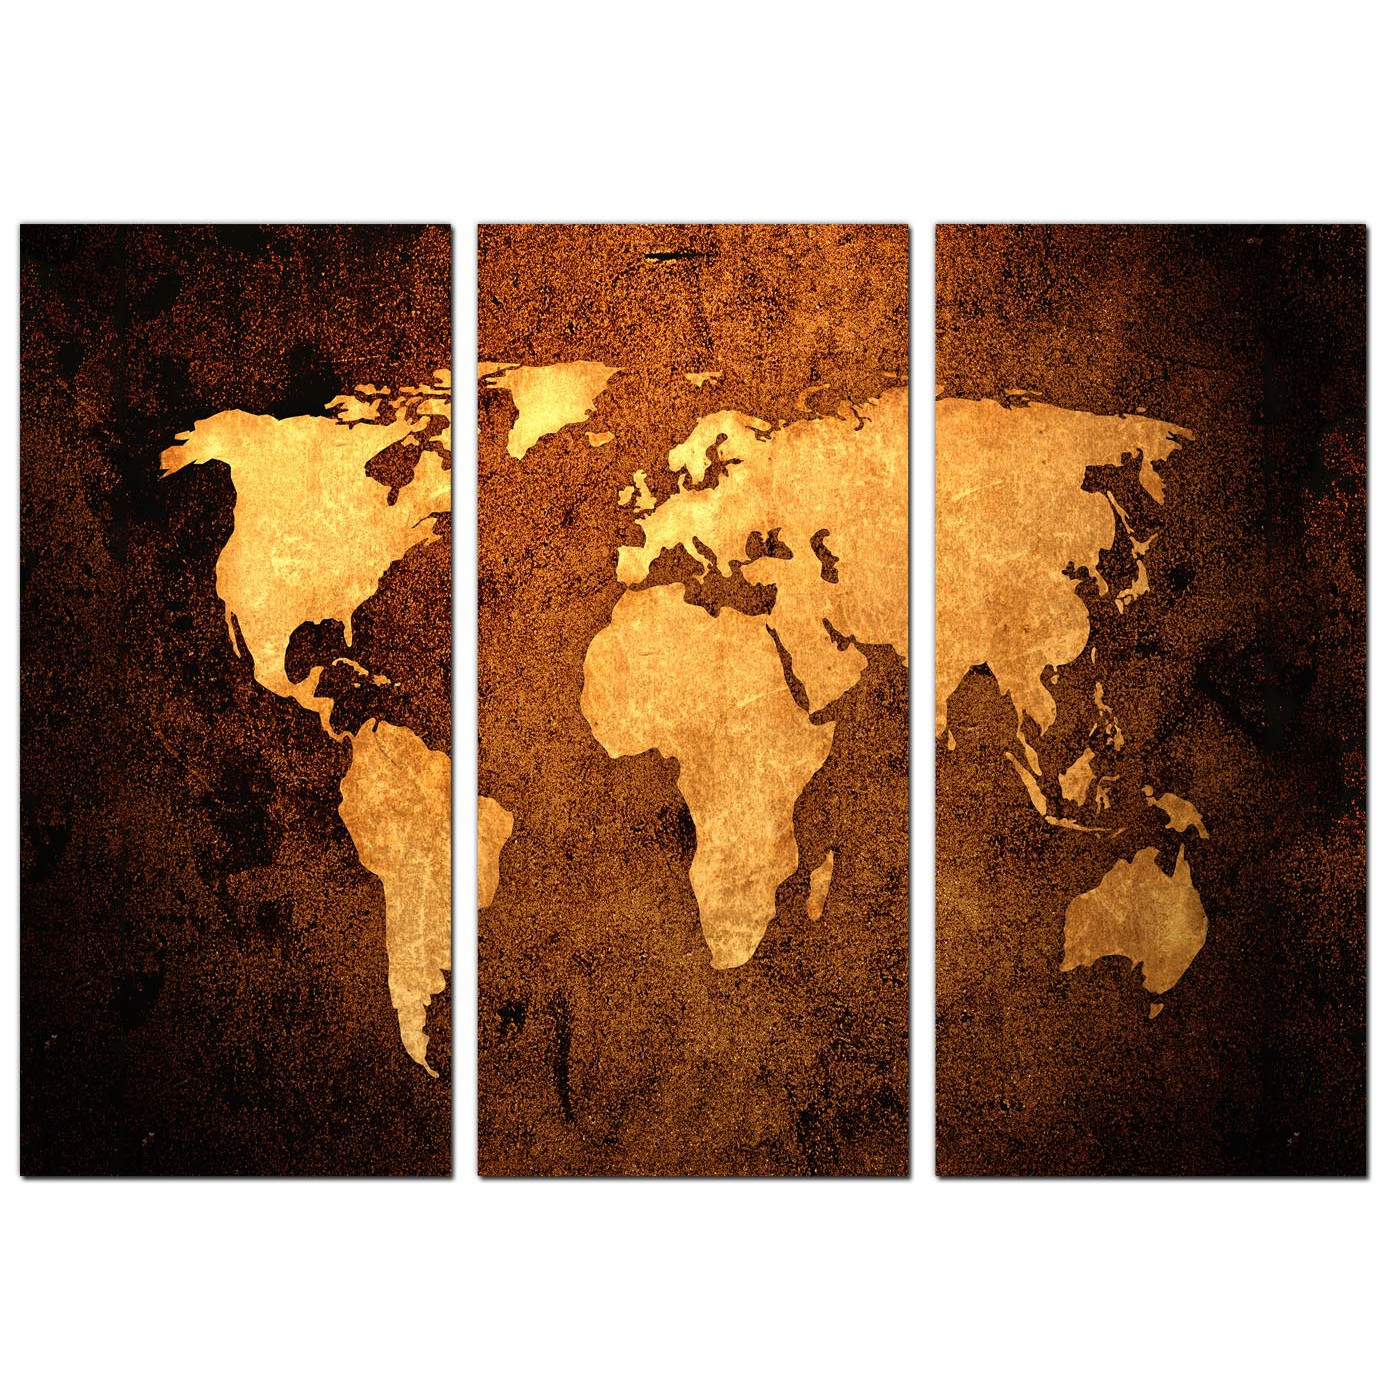 Vintage world map canvas wall art set of 3 for your bedroom display gallery item 2 3 part sepia canvas prints uk study 3188 display gallery item 3 gumiabroncs Image collections